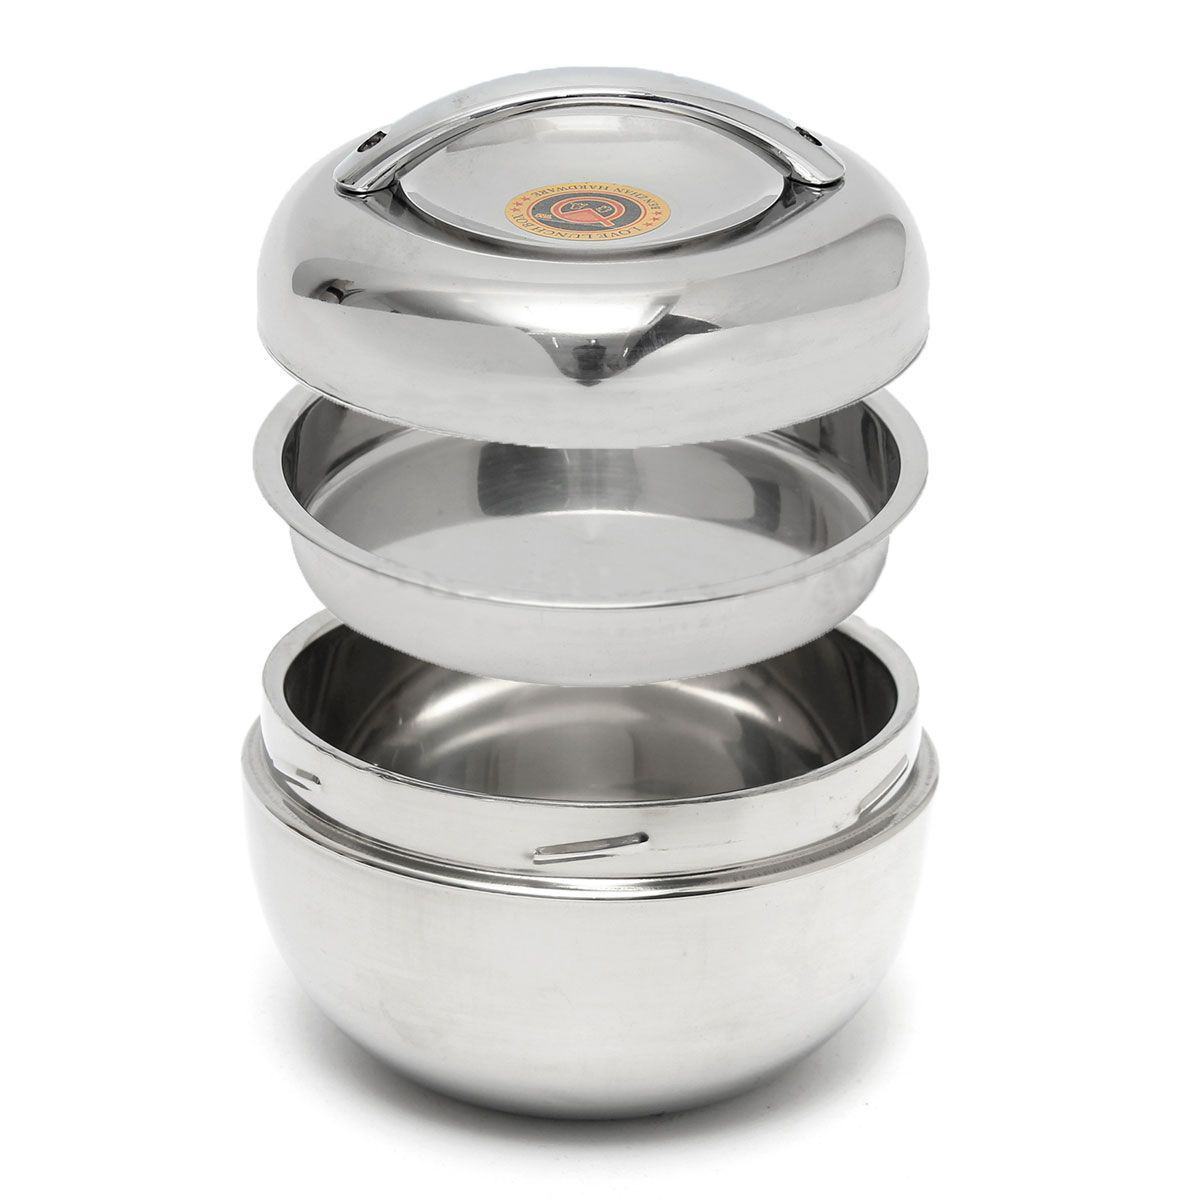 Stainless Steel Insulation : Generic stainless steel bento food container thermal